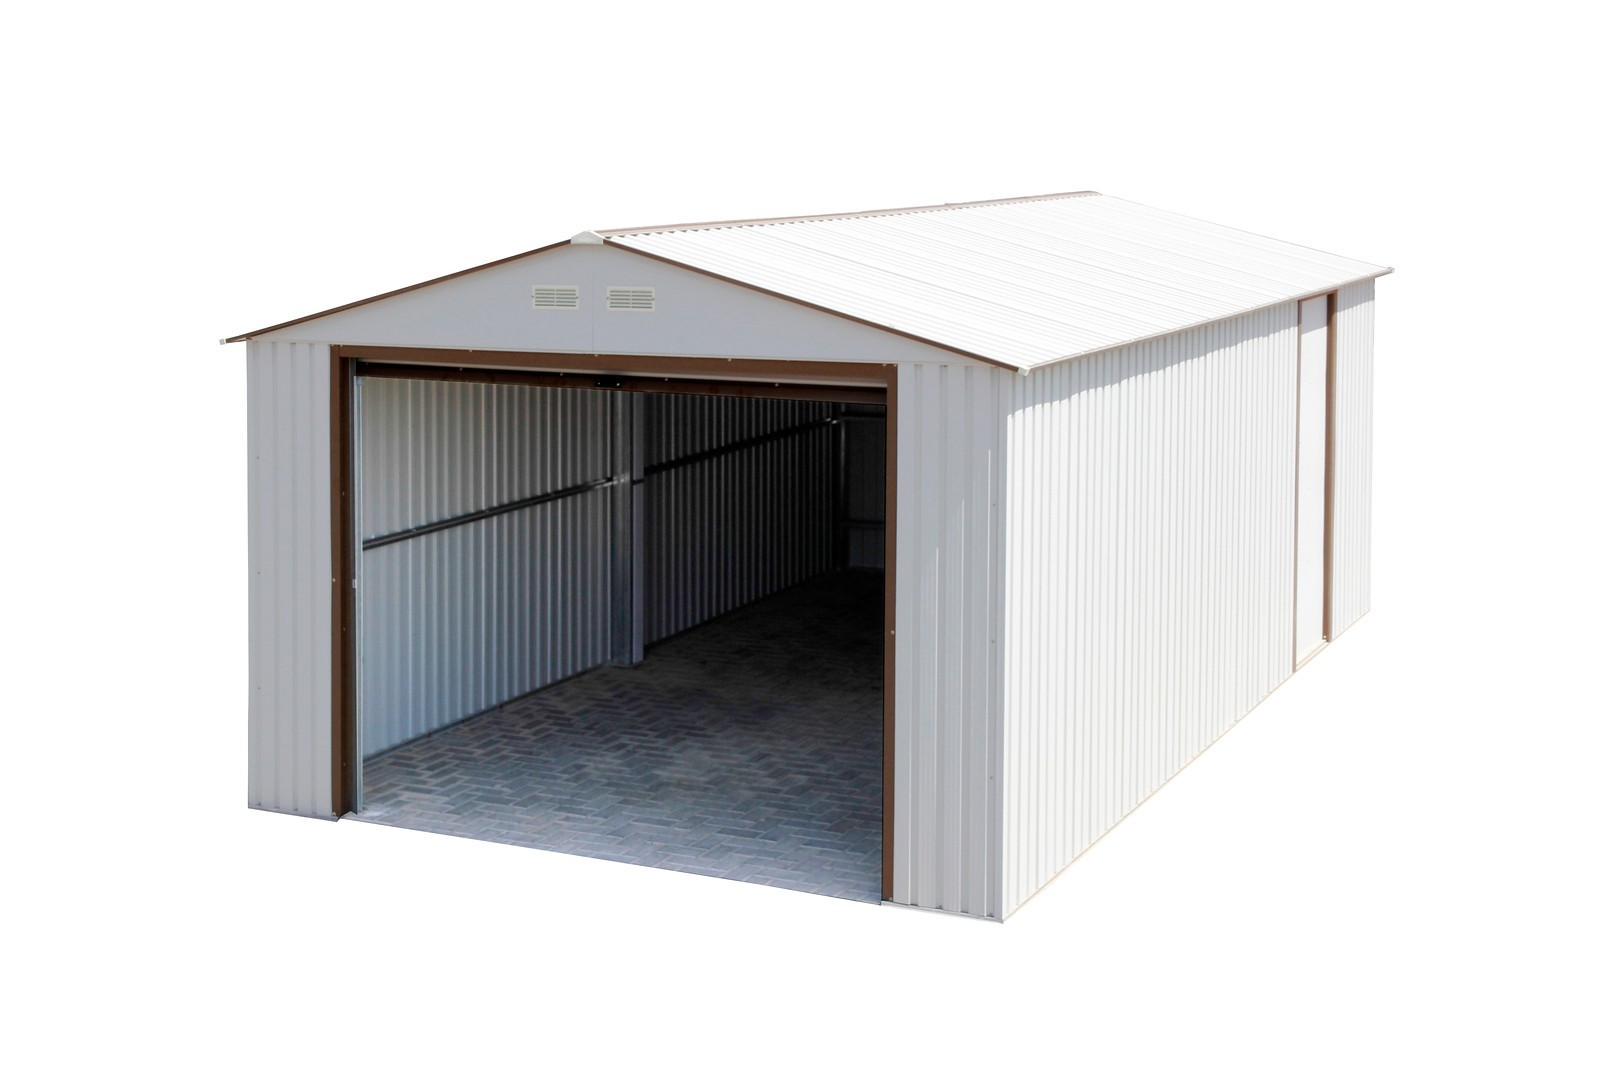 Duramax 55131 Metal Garage – 12' x 26' Metal Storage Shed – Off White with Brown Trim